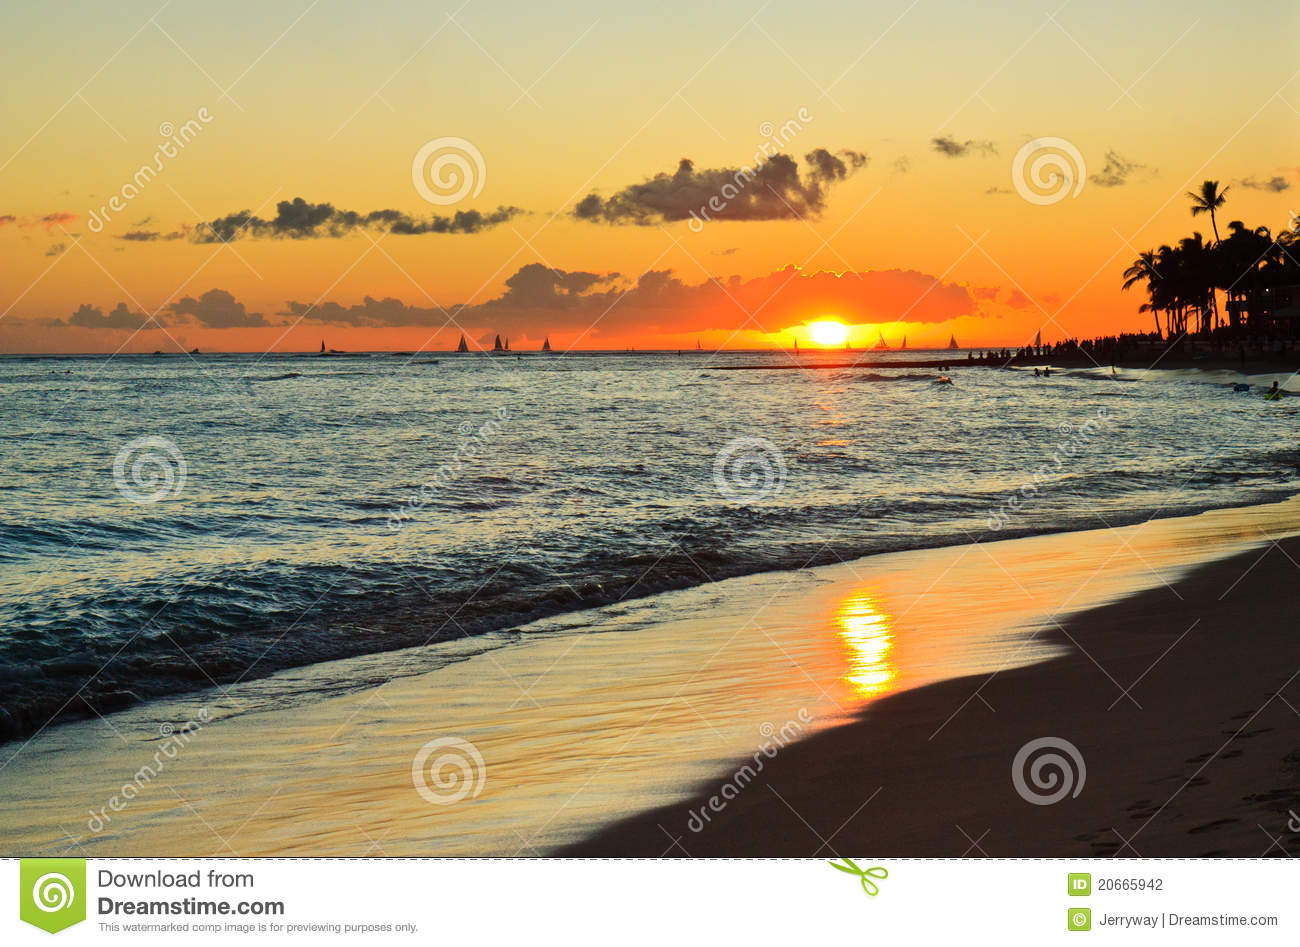 Romantic Pictures Of Tropical Beaches: Tropical Beach Sunset, Romantic Getaway, Hawaii Stock